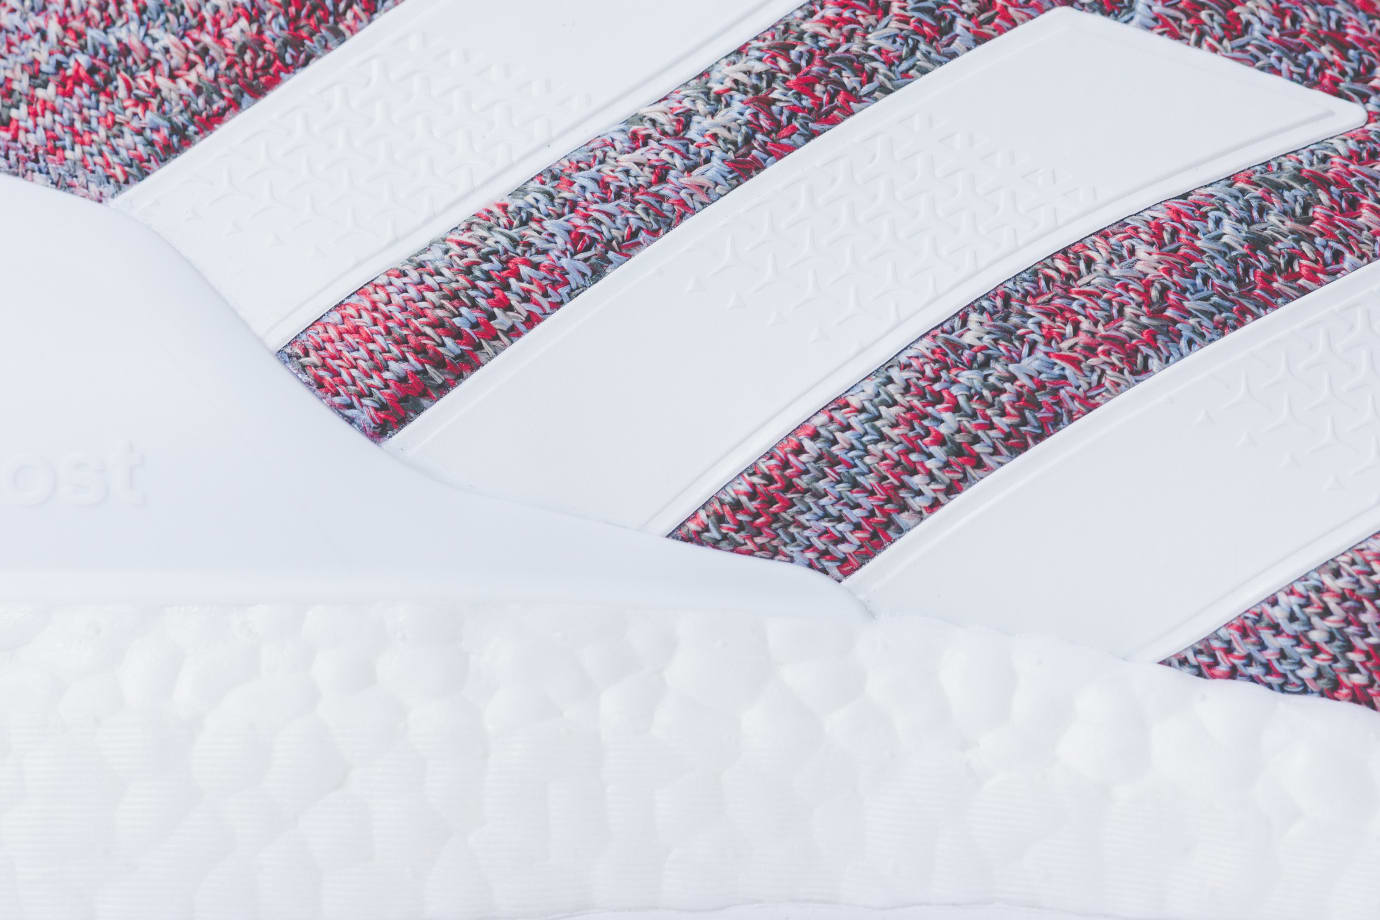 Kith x Adidas Soccer Ace 16+ Purecontrol Ultra Boost (Detail)